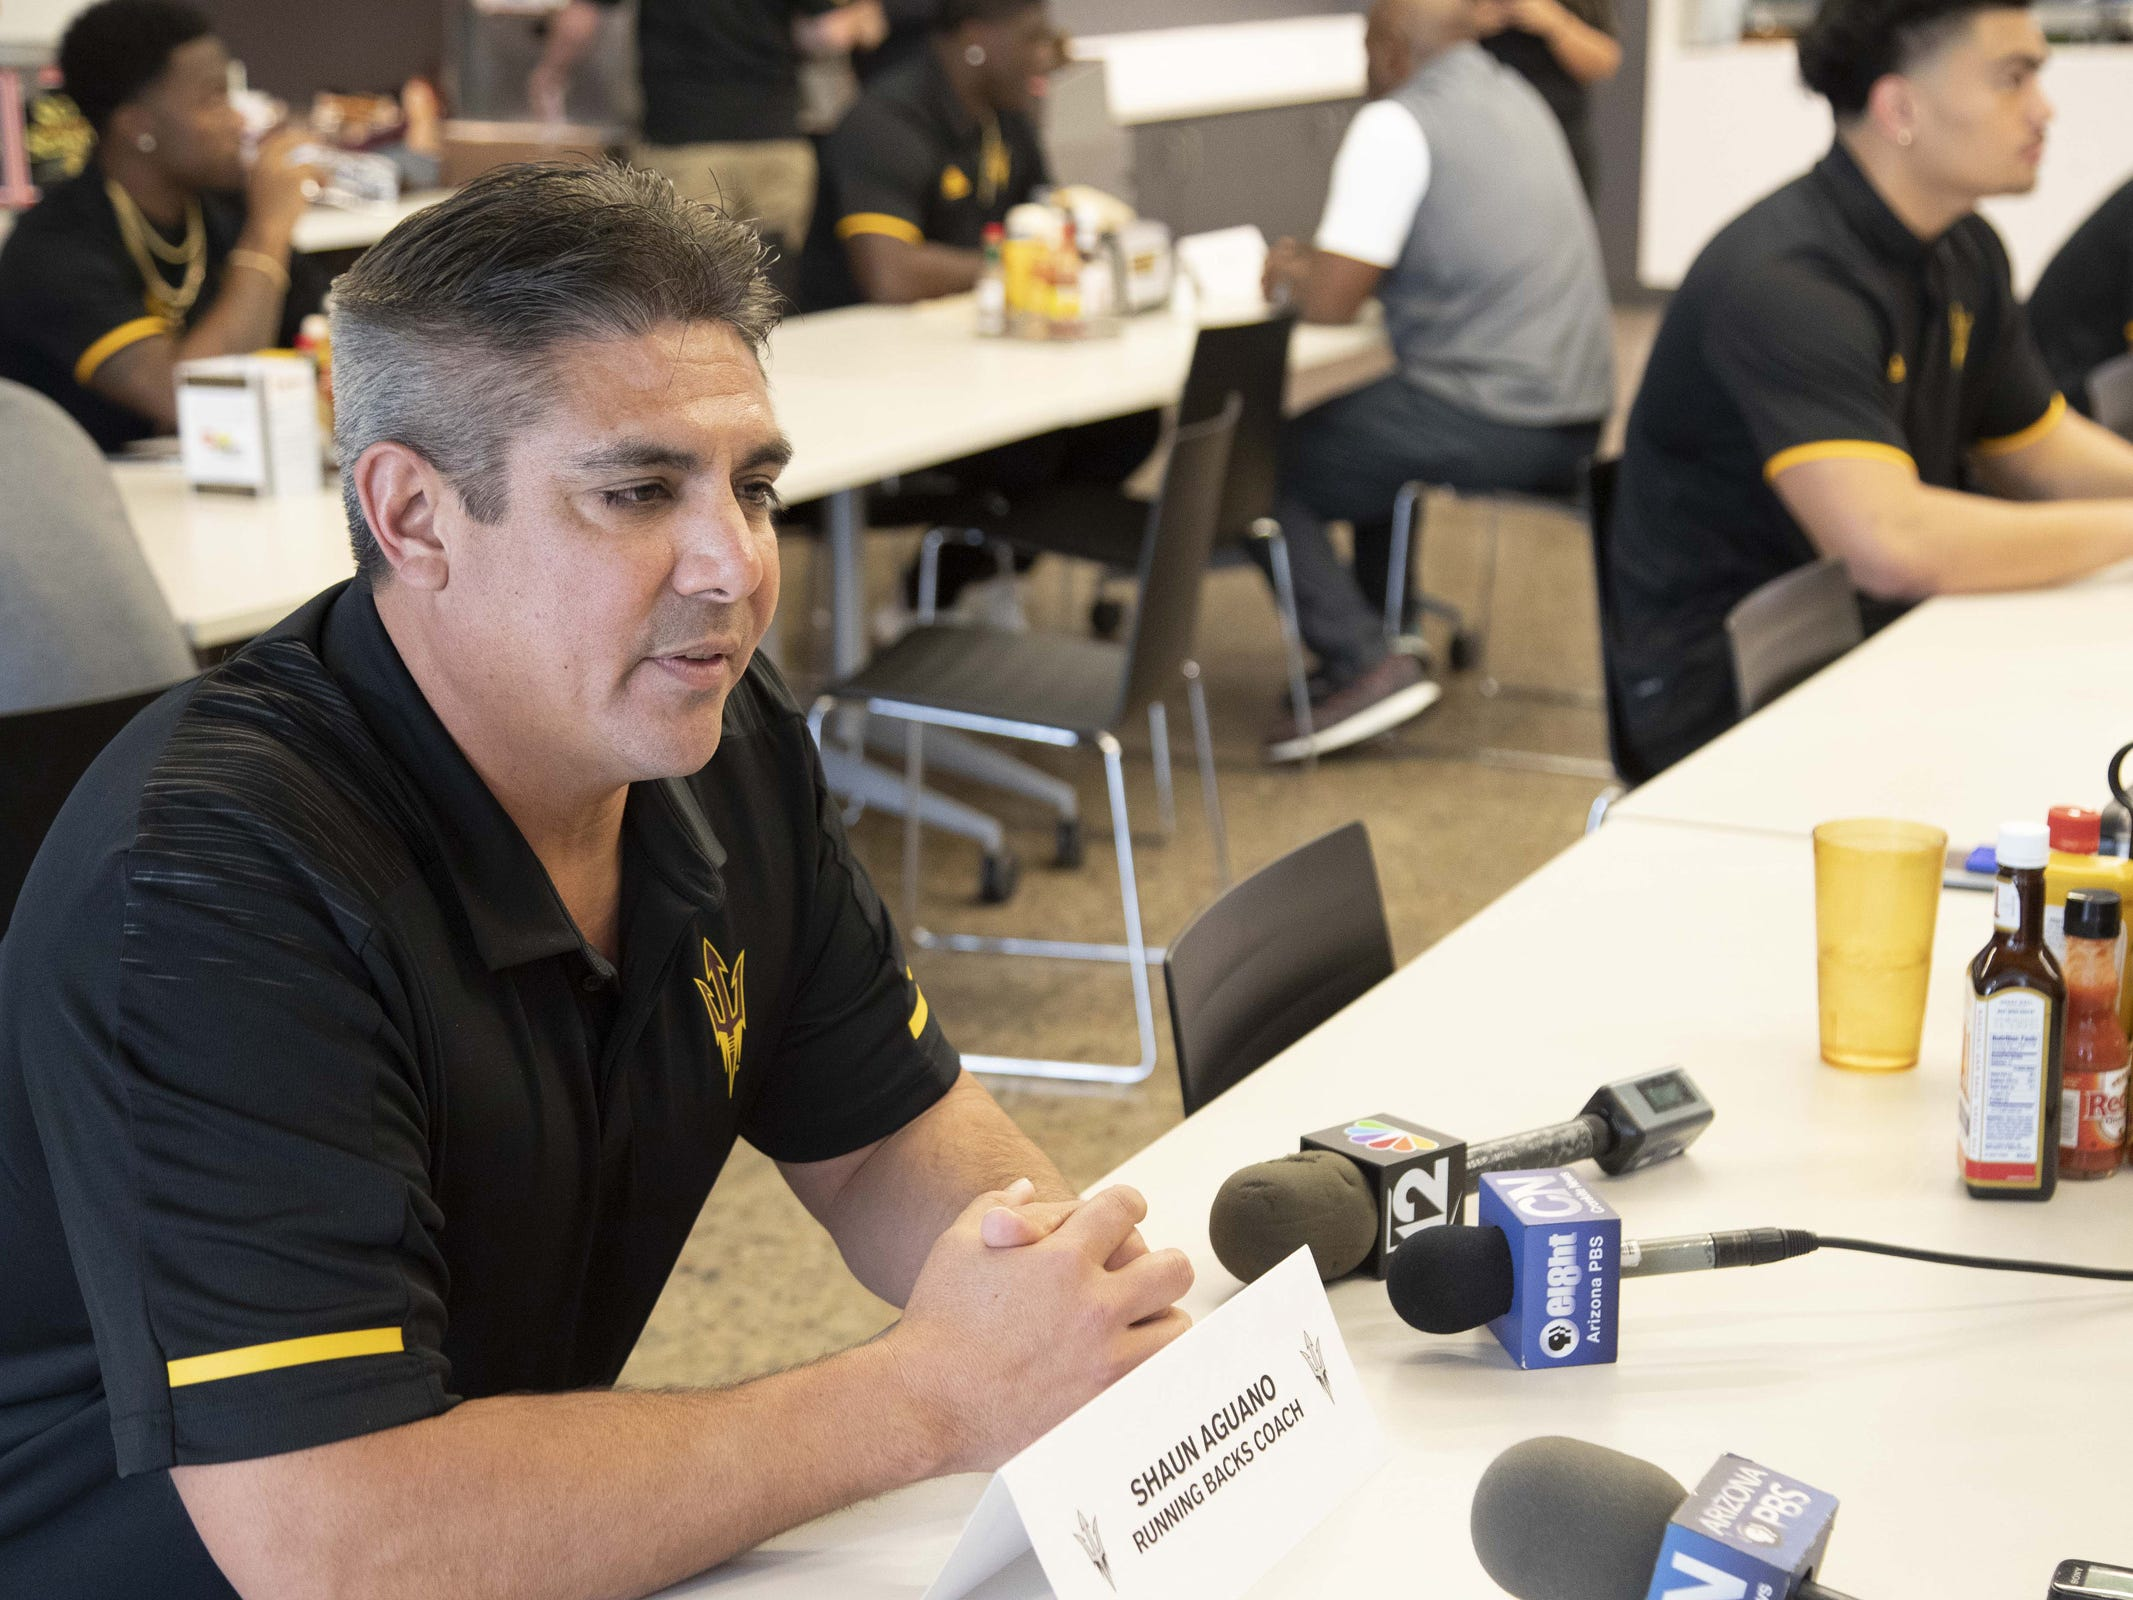 Running Backs Coach Shaun Aguano during the ASU Spring Football media day at ASU Tempe campus.